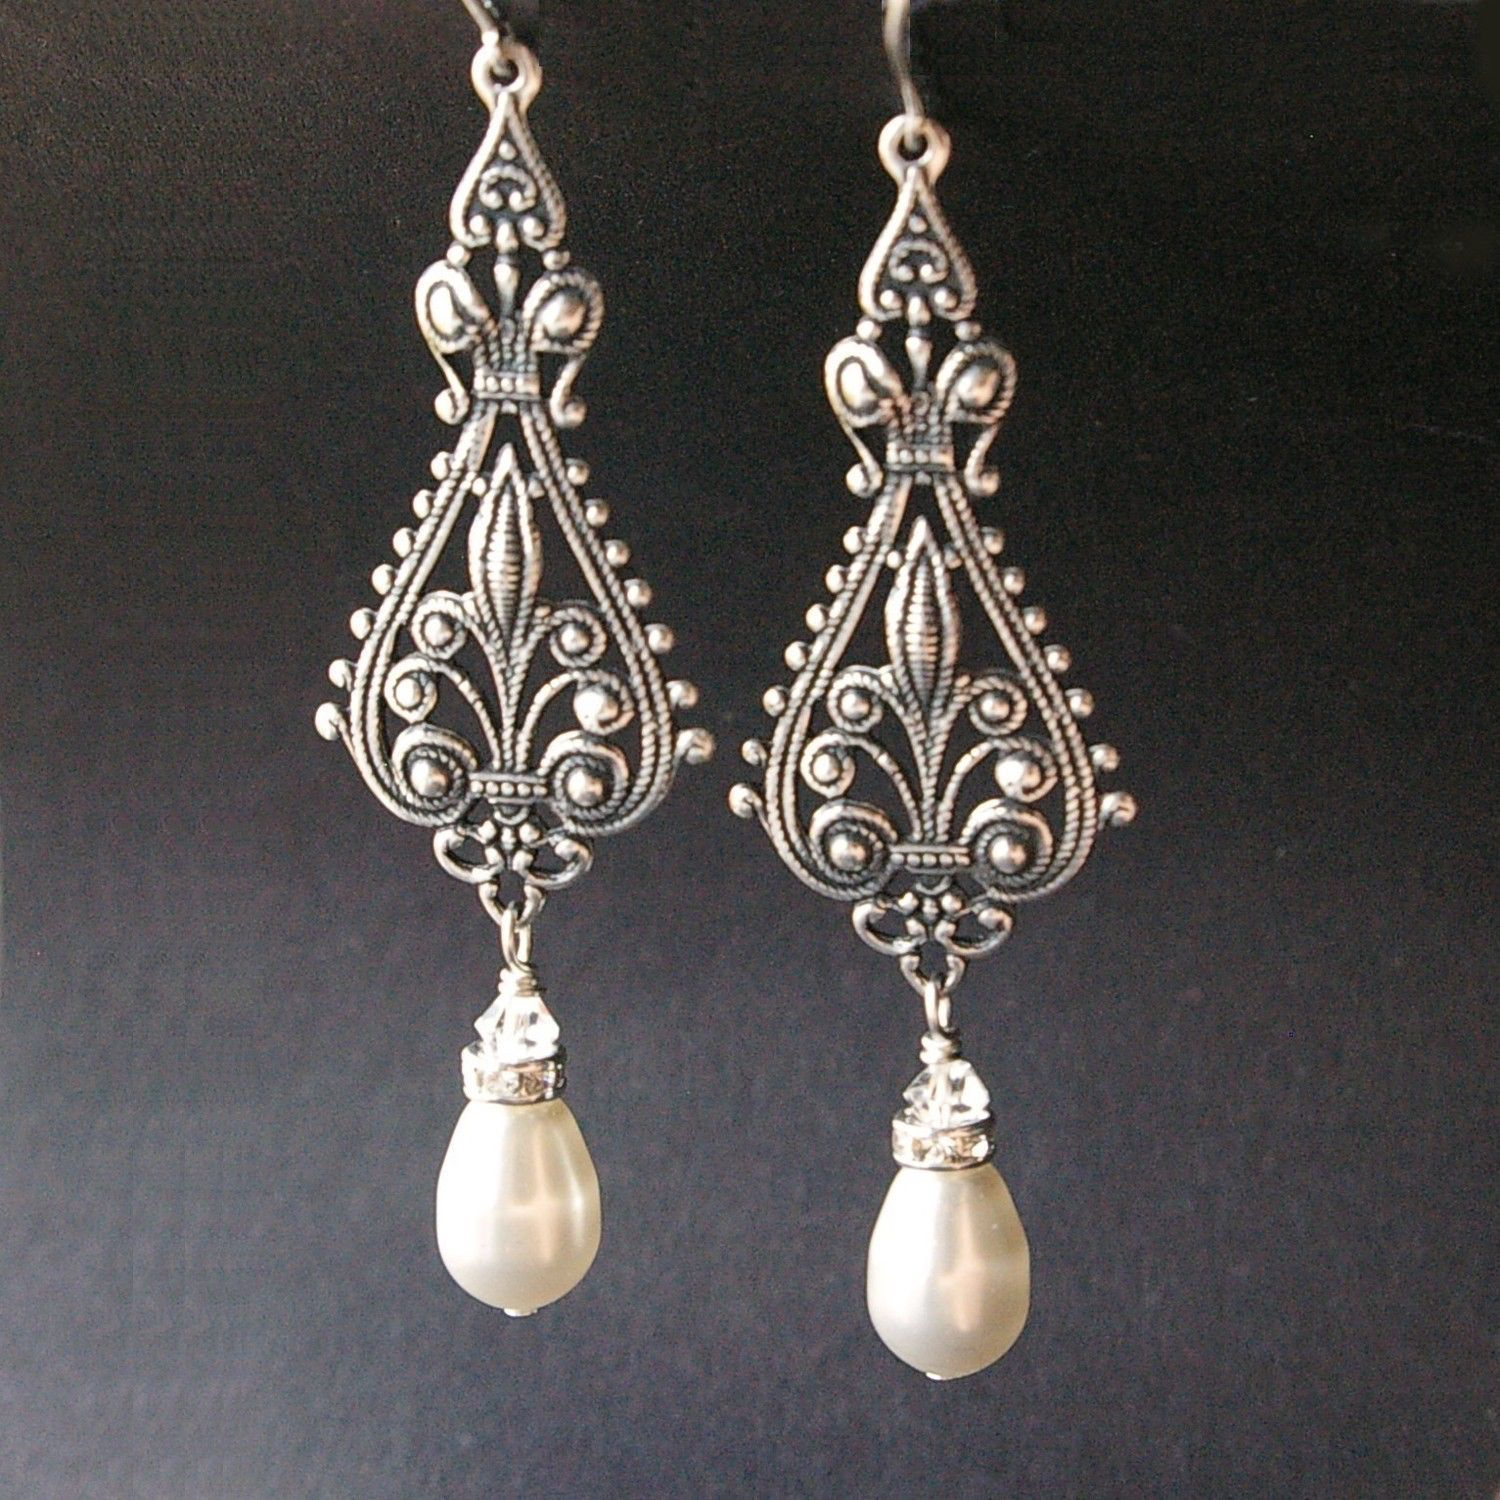 vidal filigree s earrings gloria handmade mexican products